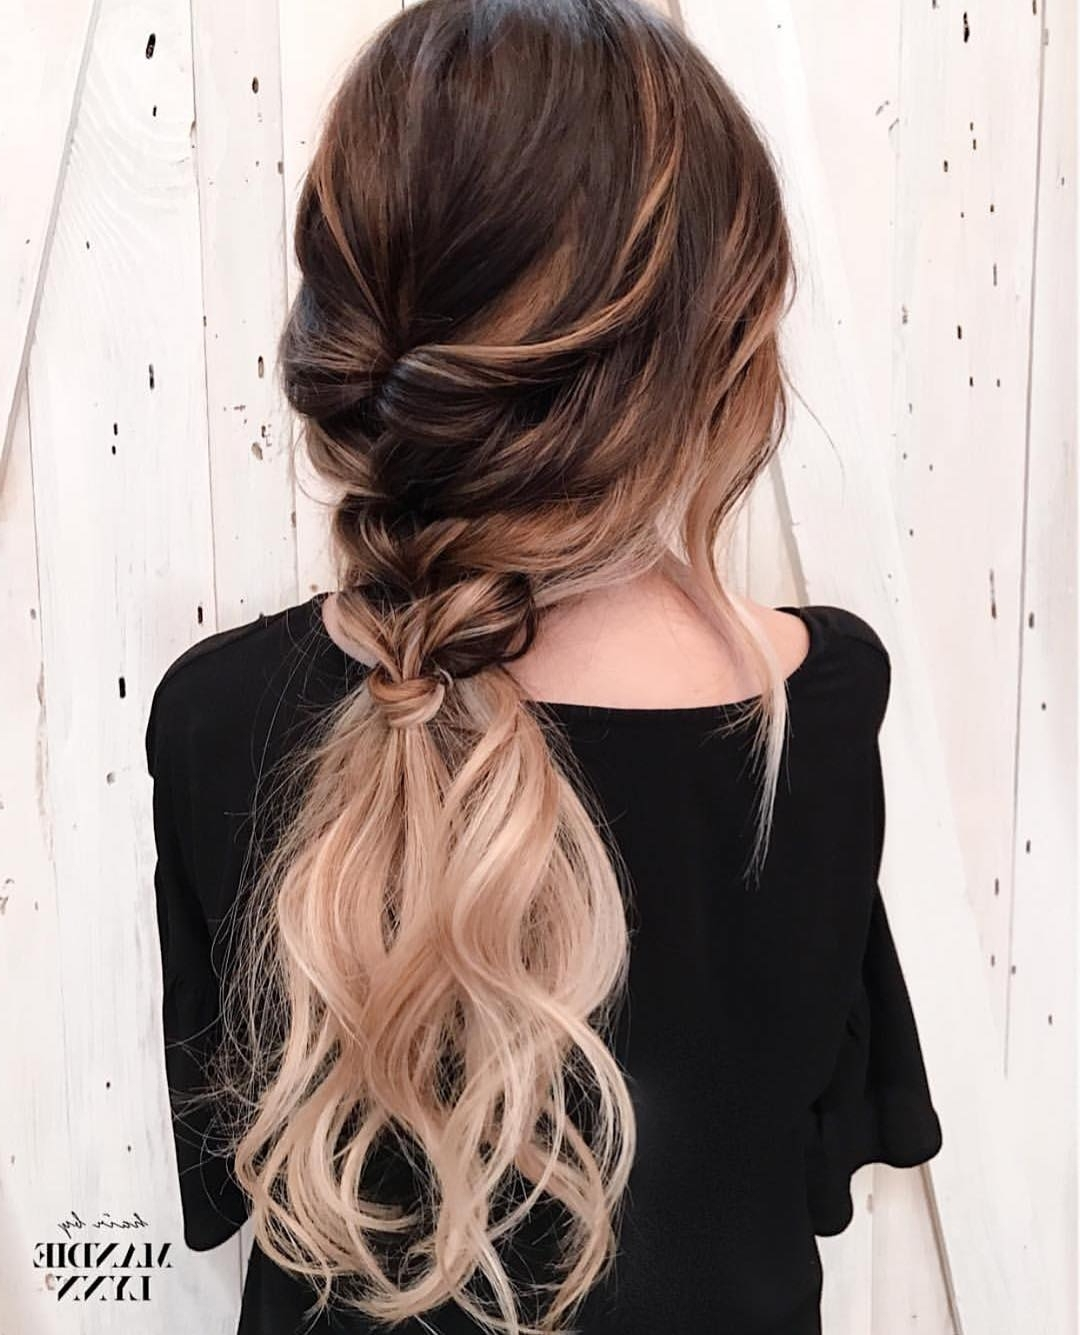 Popular Ponytail Hairstyles For Brunettes With 10 Trendiest Ponytail Hairstyles For Long Hair 2018 – Easy Ponytails (View 10 of 20)